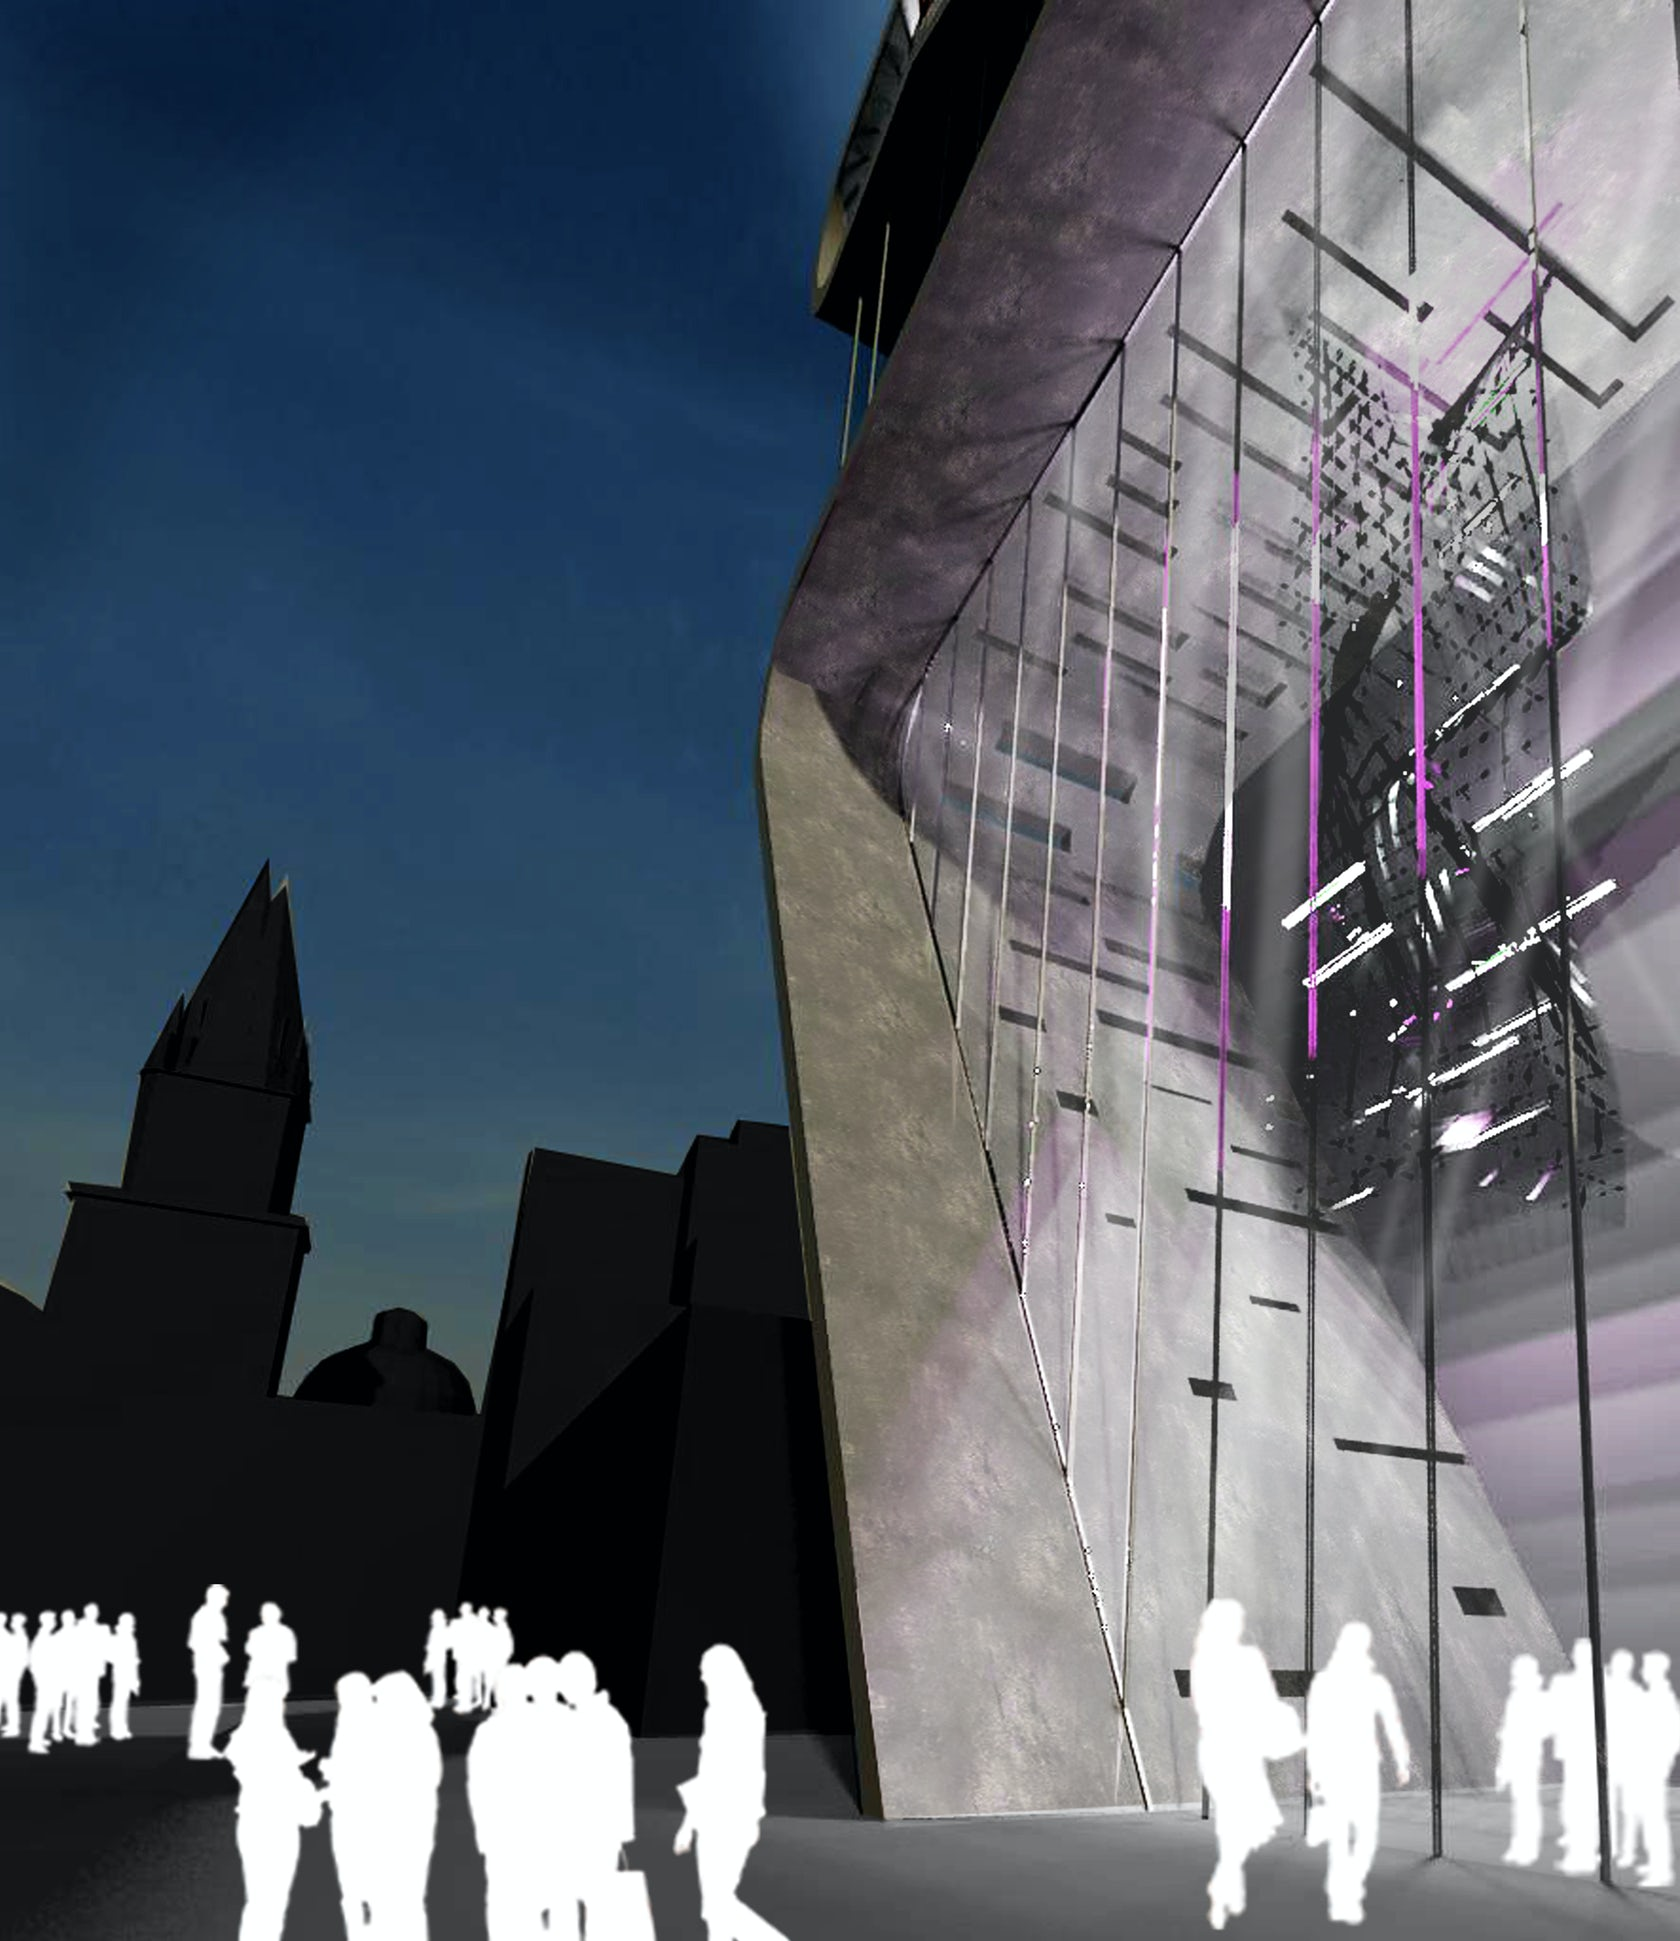 Hotel centro ideas competition architizer for Hotel centro new york